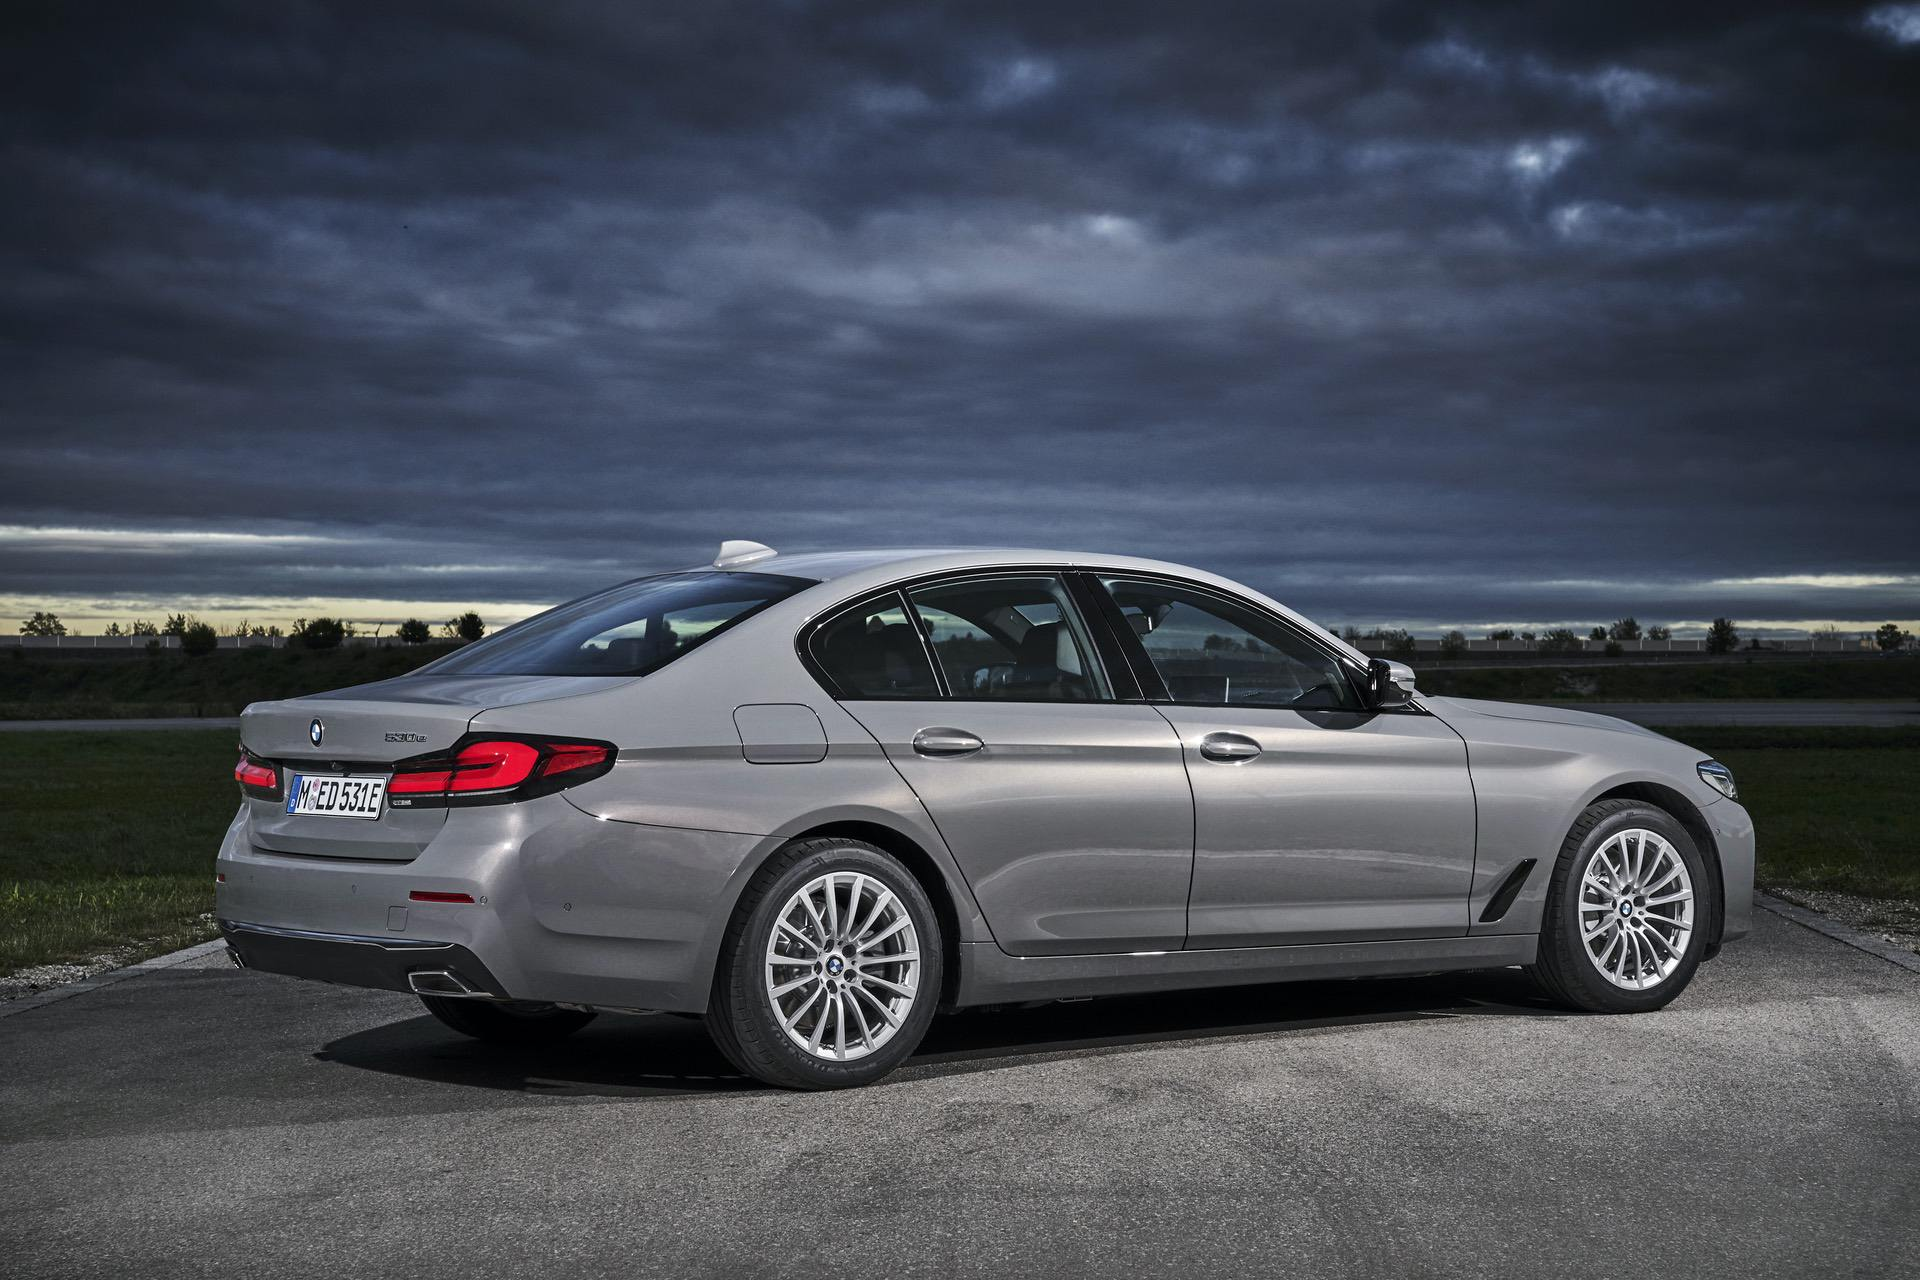 2021 BMW 530e Facelift - New Photo Gallery